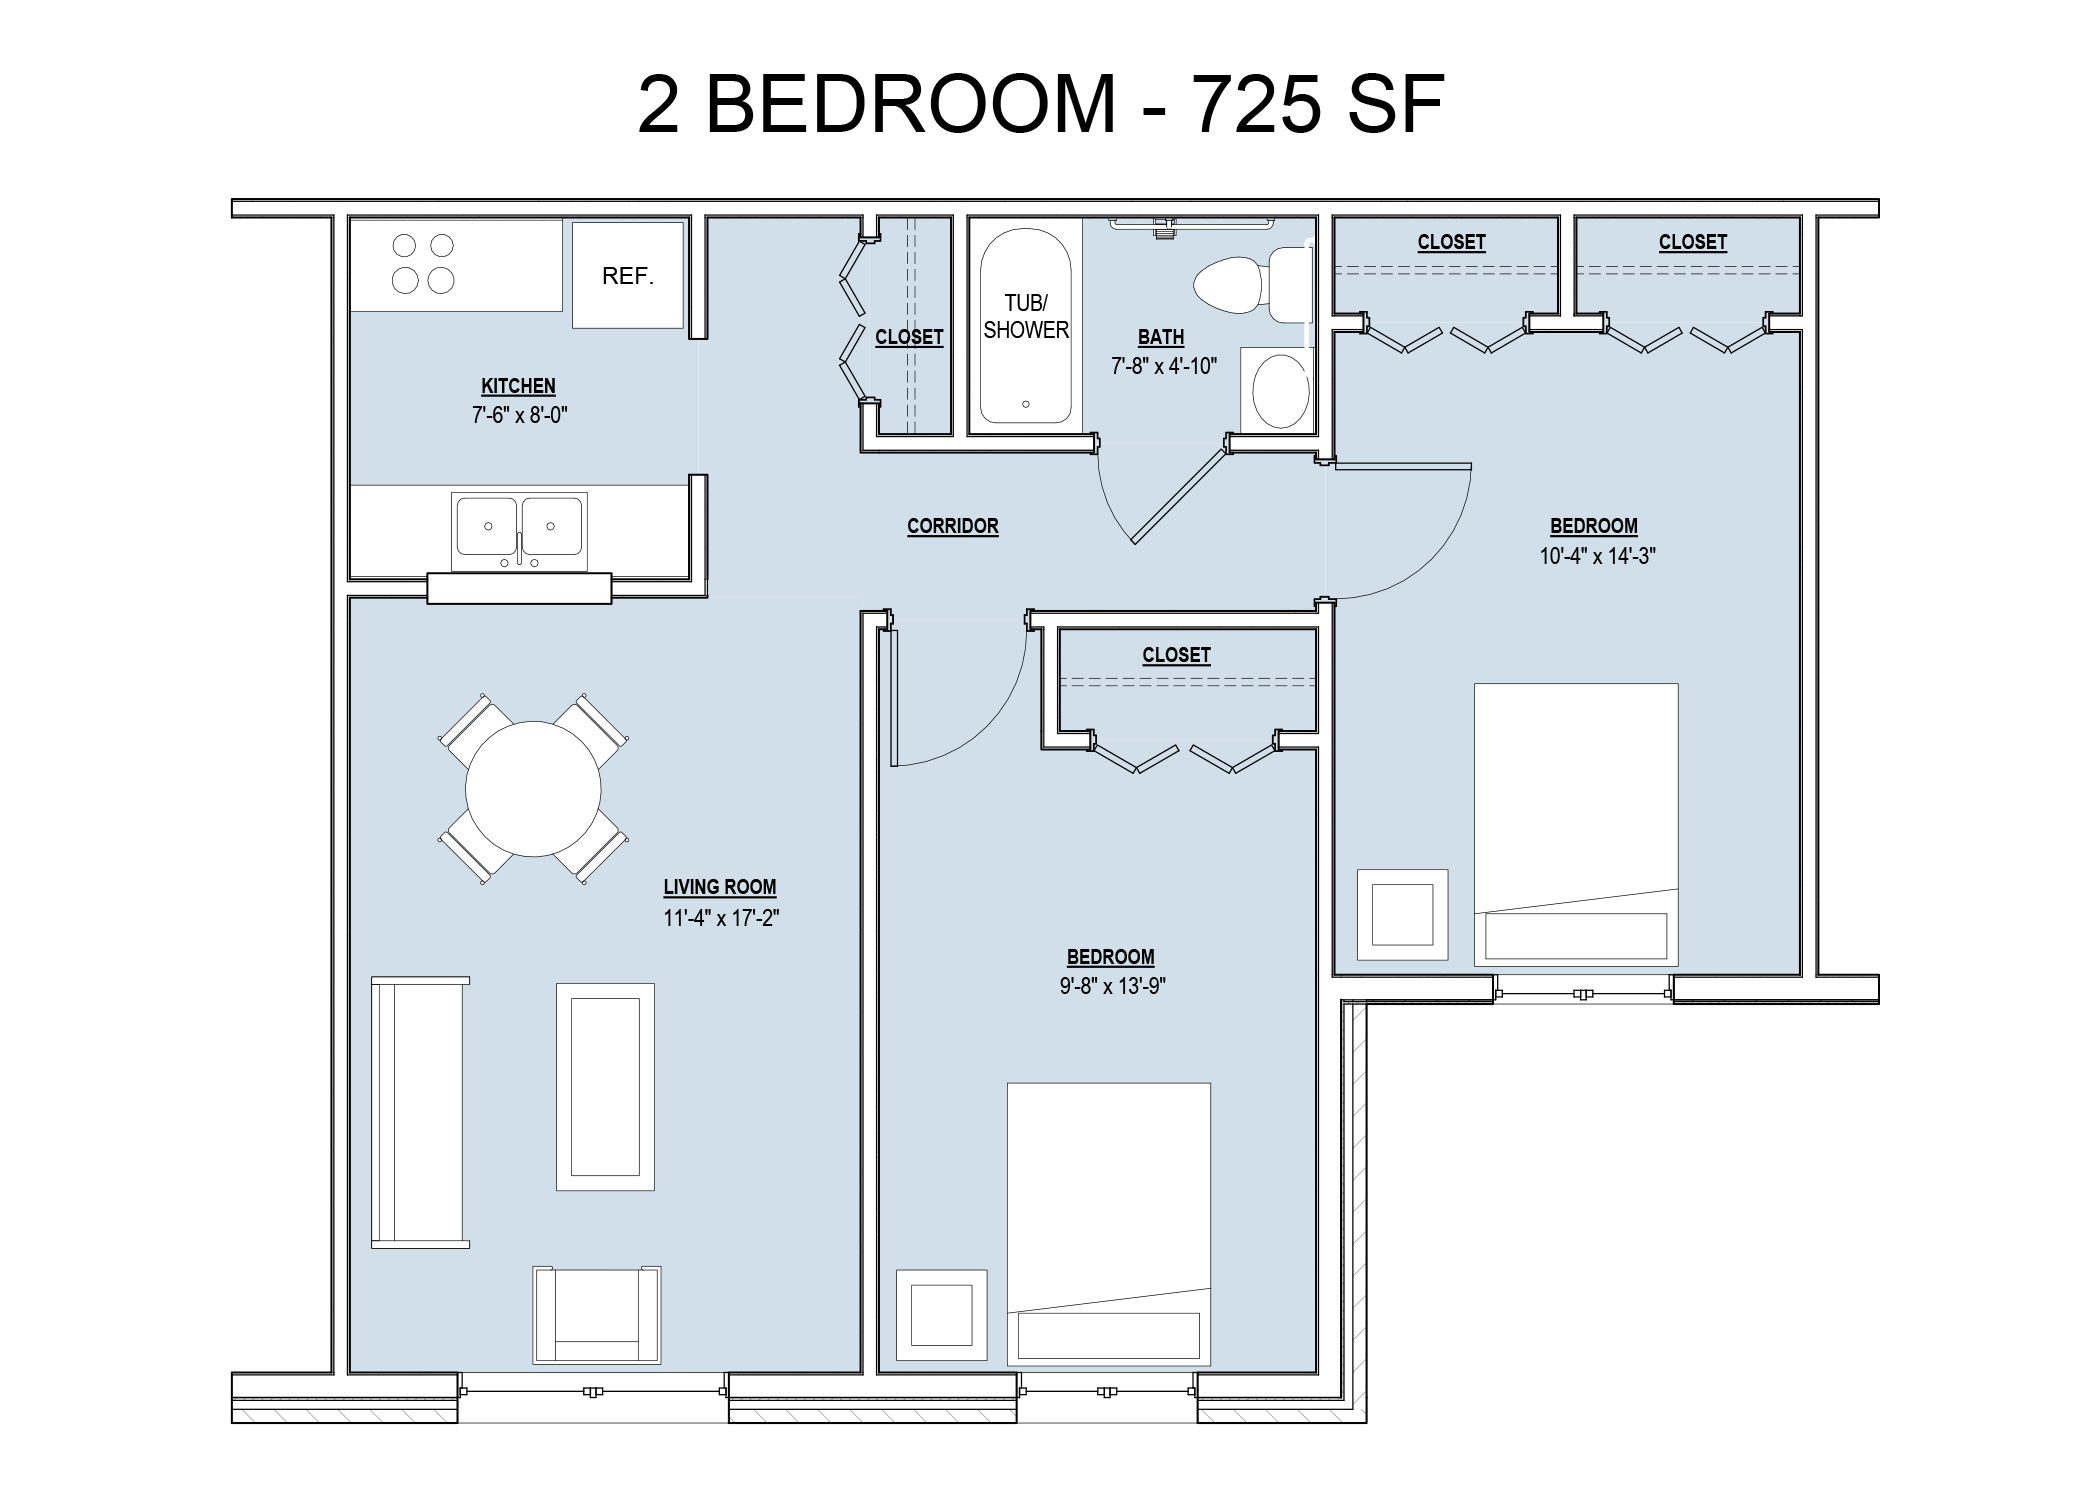 royer-garden-two-bedroom